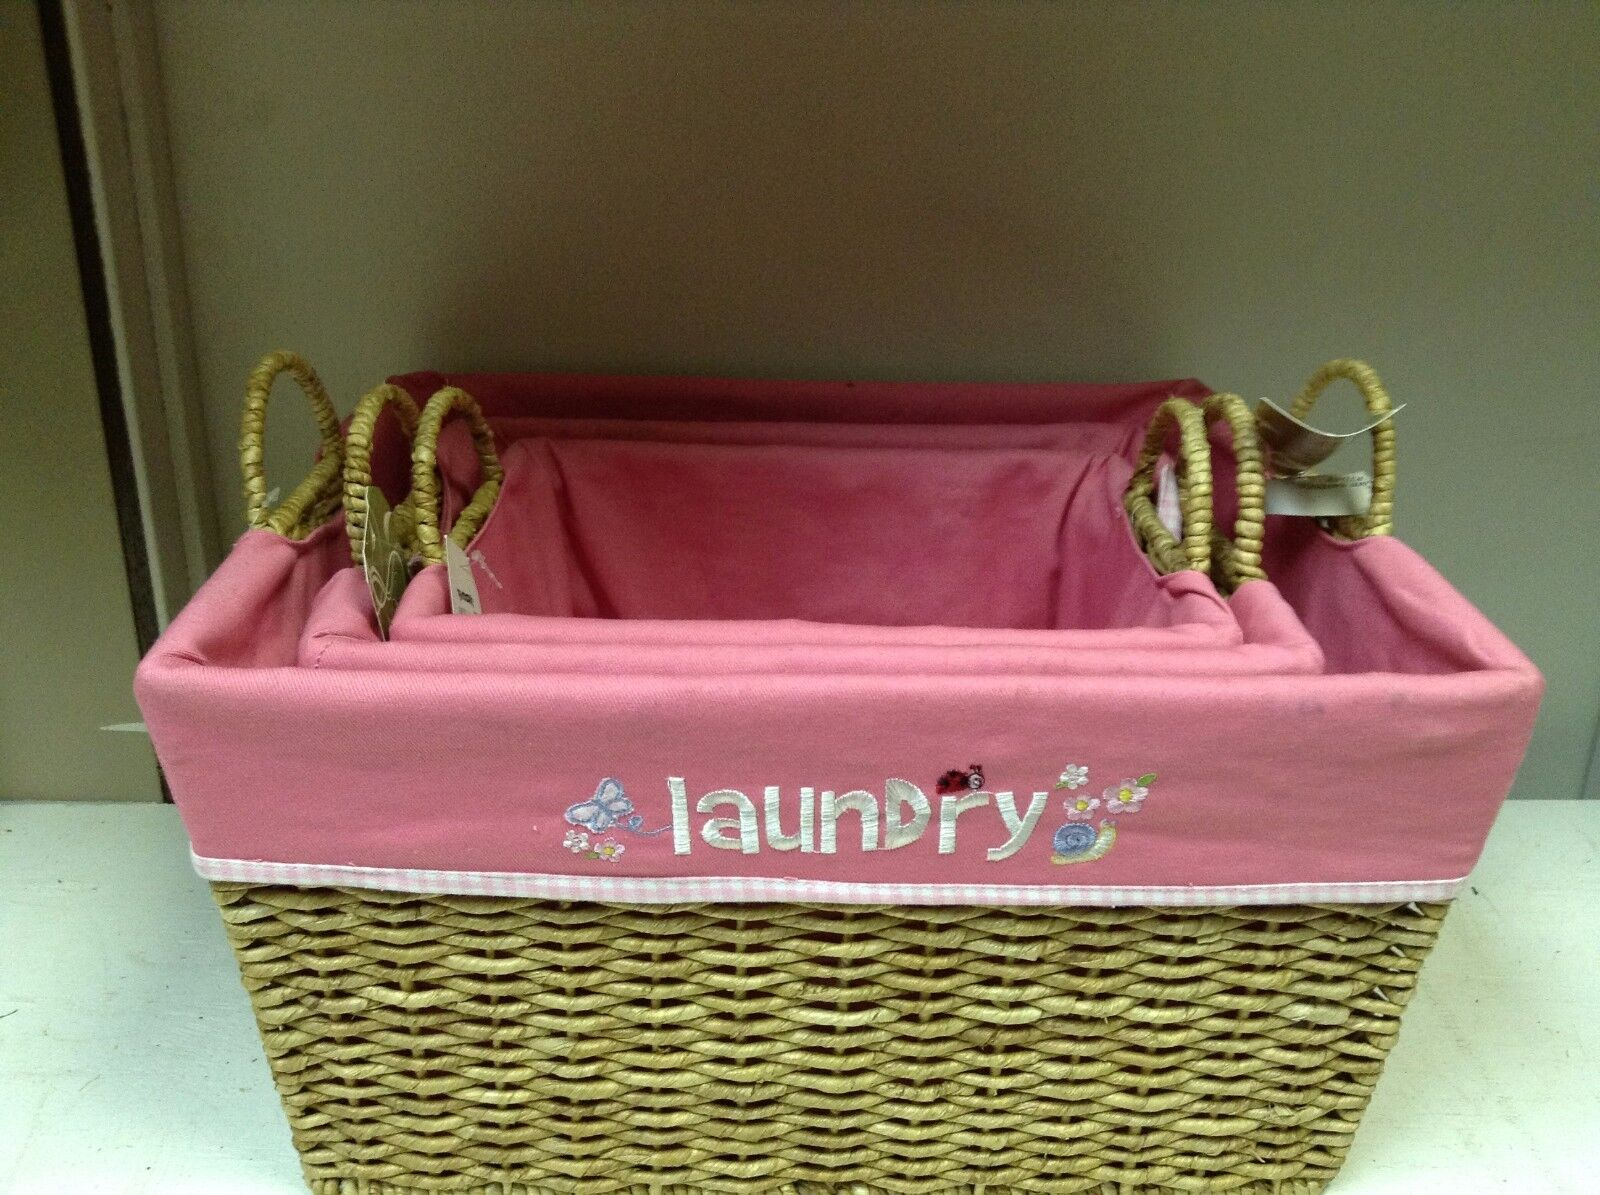 1 Natural Embroidered Toy LAUNDRY Bathroom Storage Basket Pink Liner 19x16x10